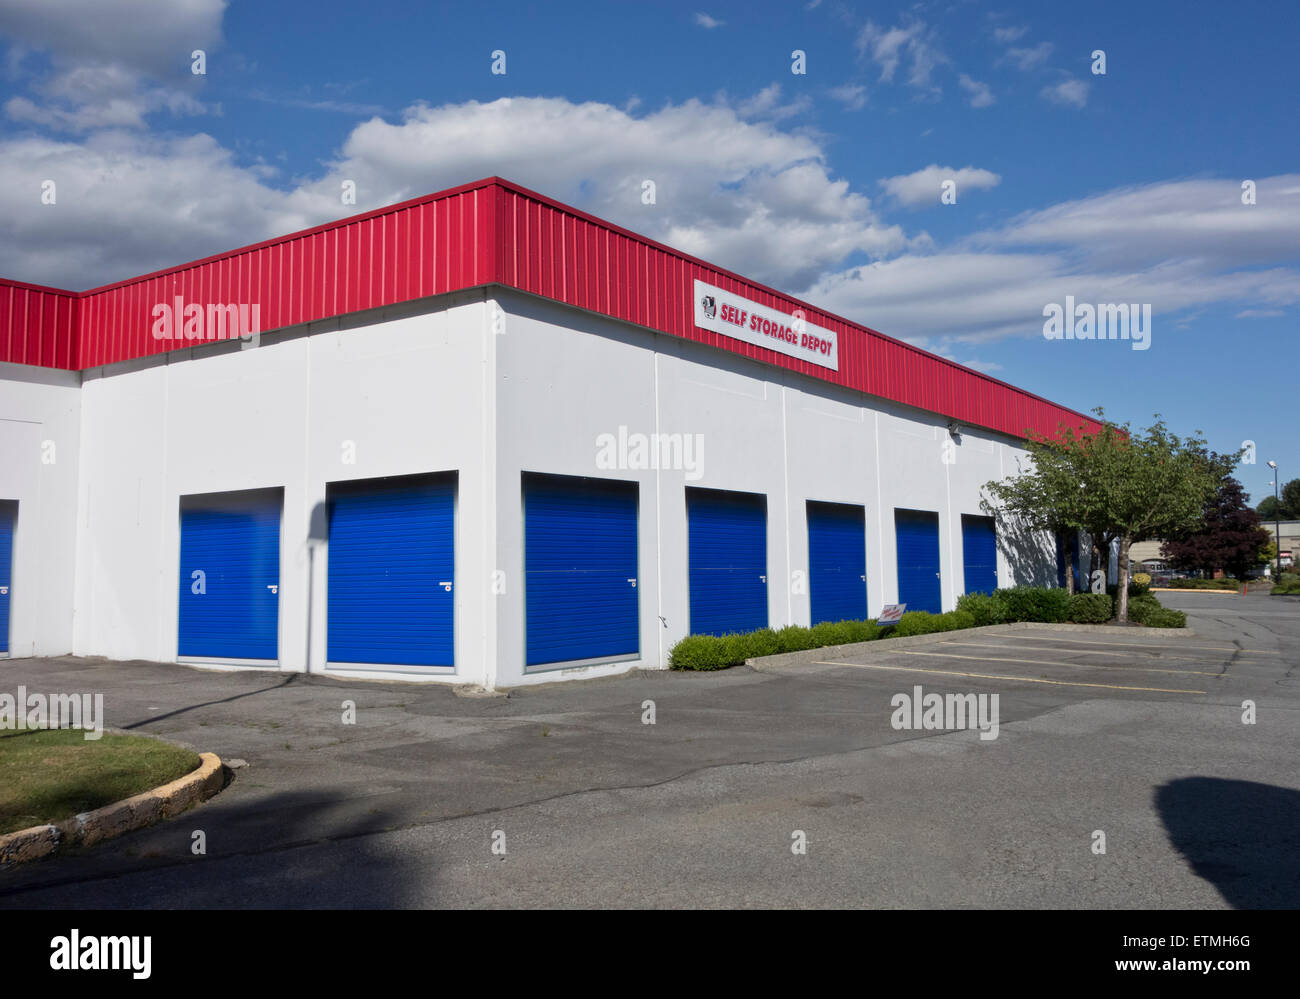 Self Storage Depot, A Storage Warehouse In Suburban Vancouver, Canada.  Outside Building.